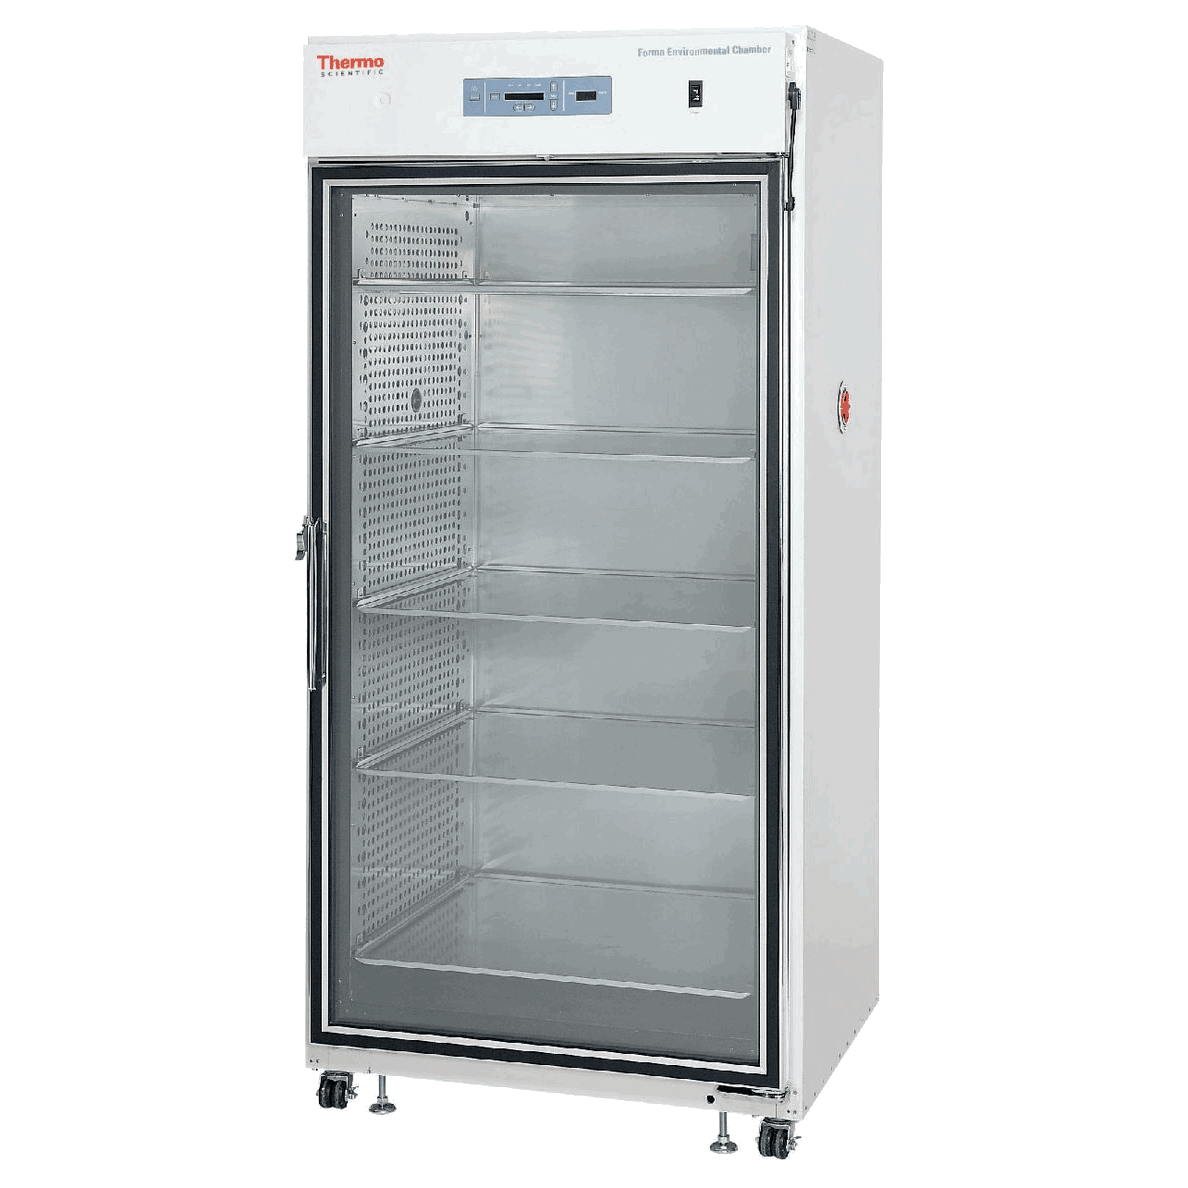 Thermo Scientific 3961 Forma Environmental Chamber 29-cu ft | 821.2L